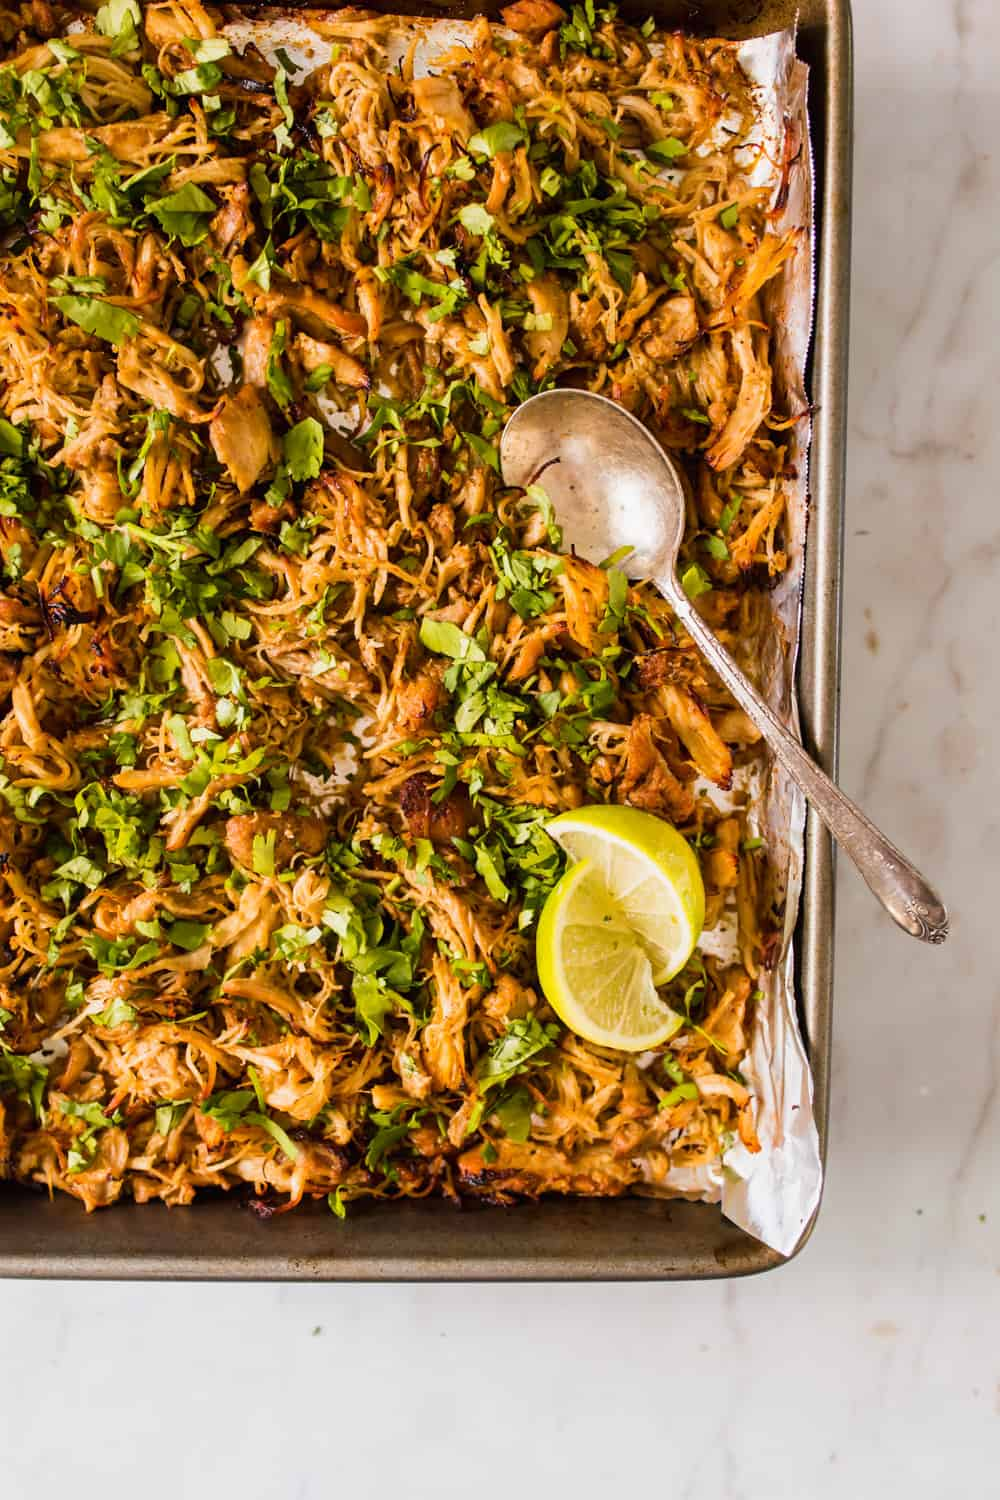 sheet pan filled with browned shredded chicken with herbs and lime wedges on top